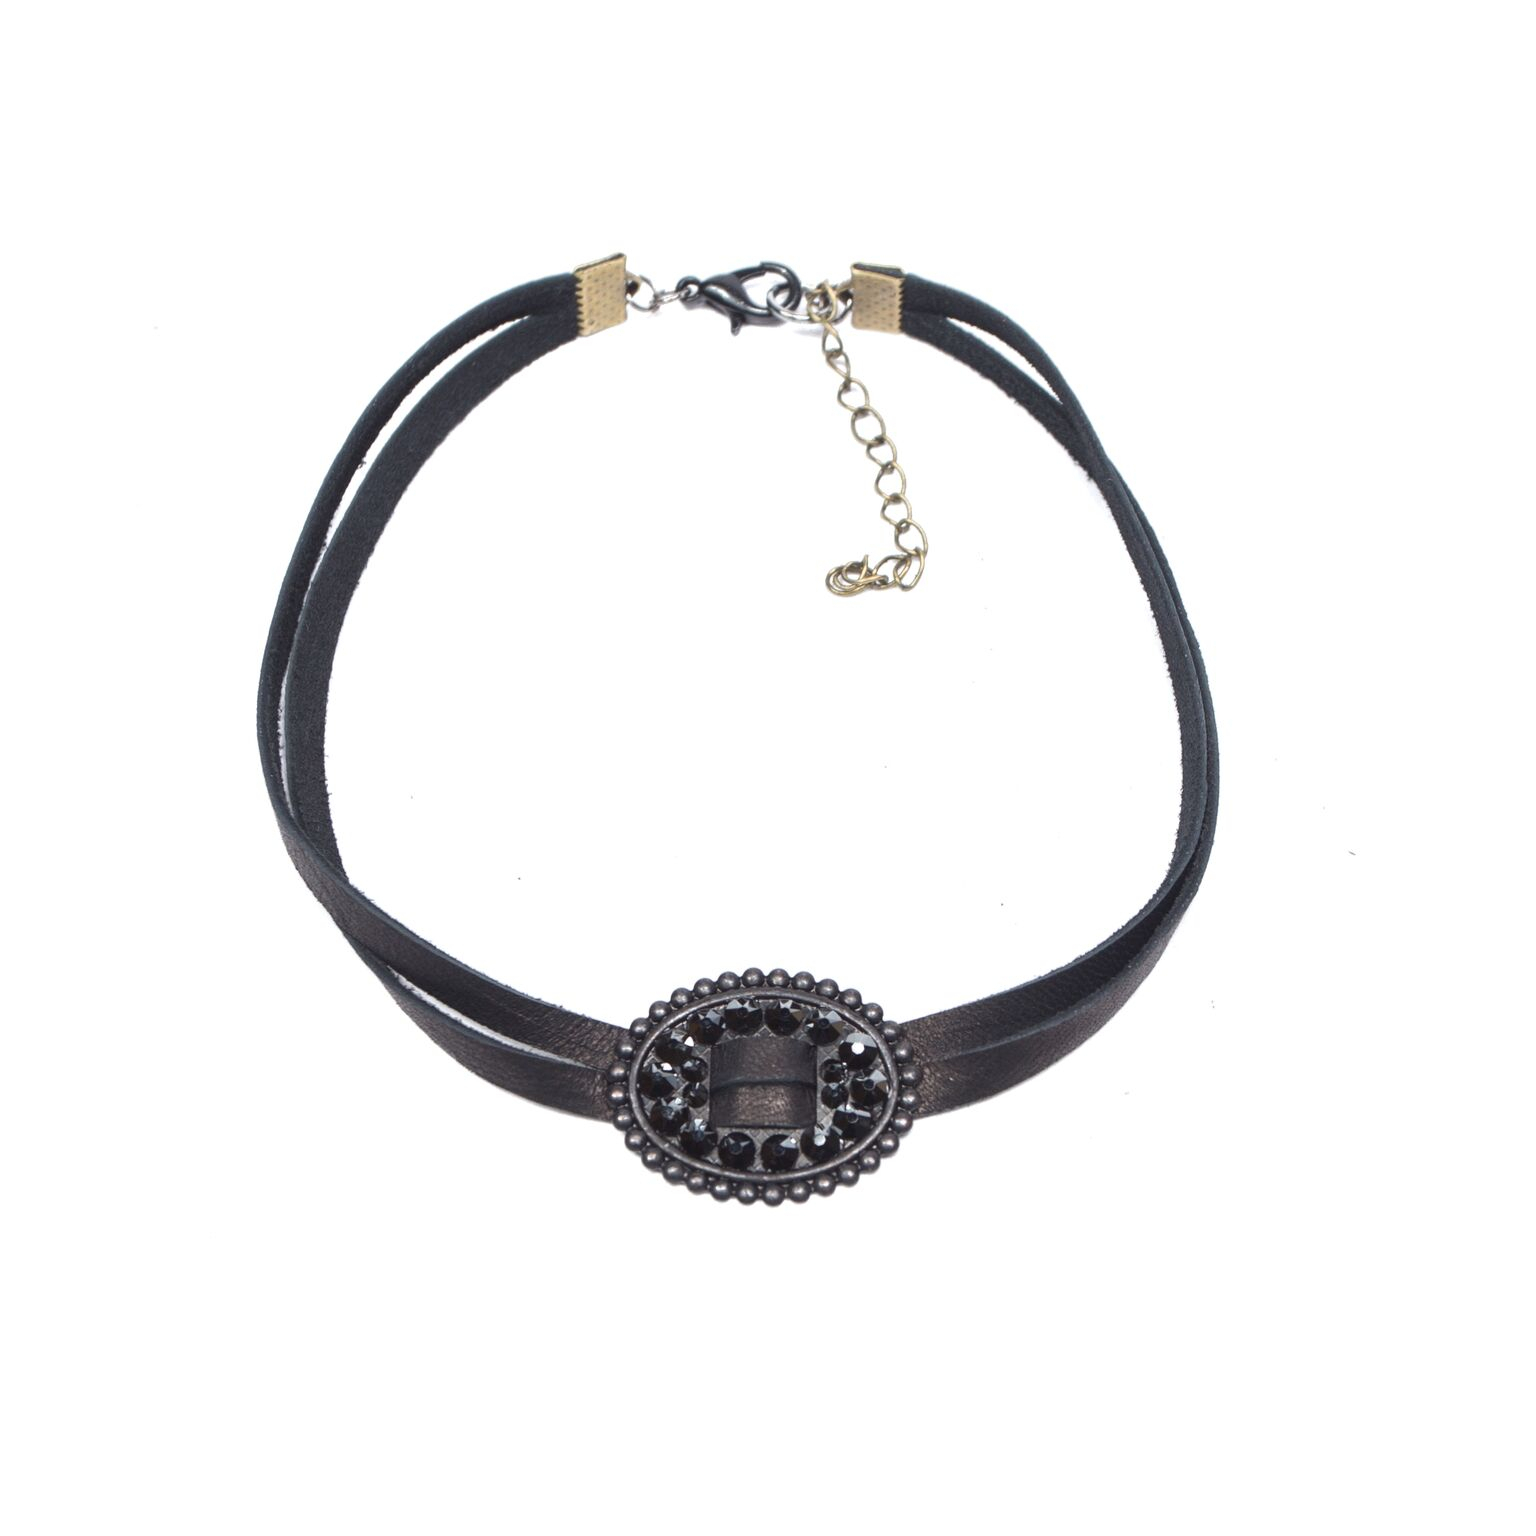 Pink Panache Choker – Black/matt Black Oval Slide With Crystals In Latest Woven Fabric Choker Slider Necklaces (Gallery 19 of 25)